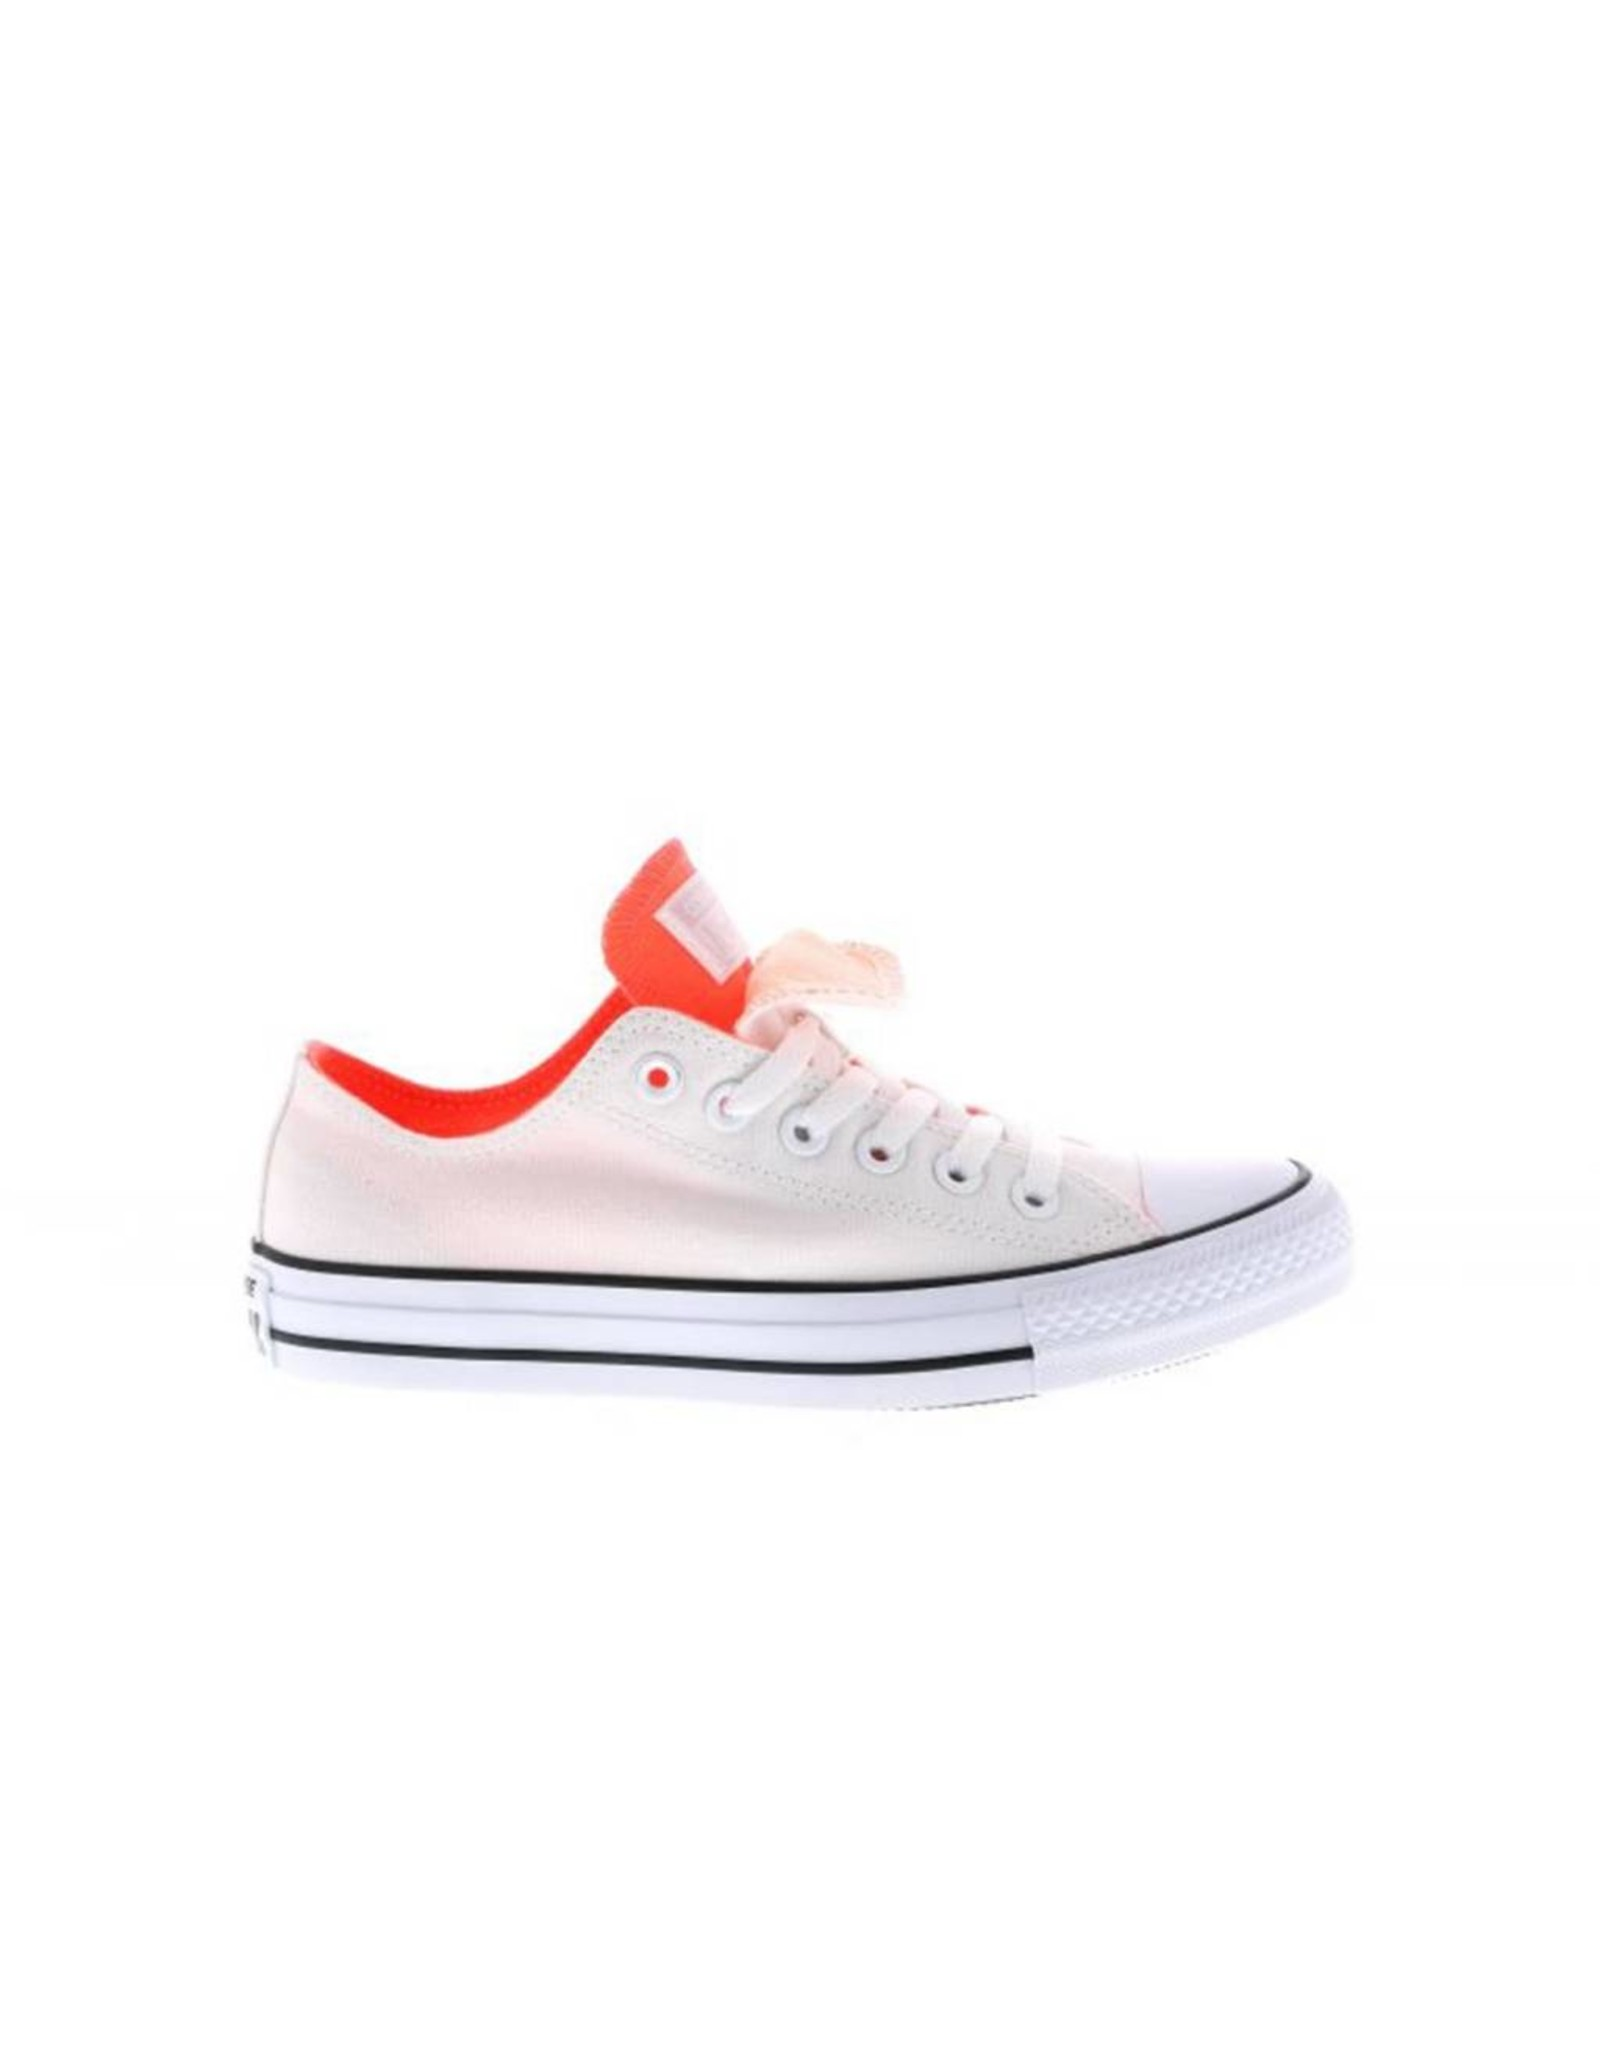 CONVERSE CHUCK TAYLOR DOUBLE TONGUE OX WHITE/HYPER ORANGE C11DW-556679F